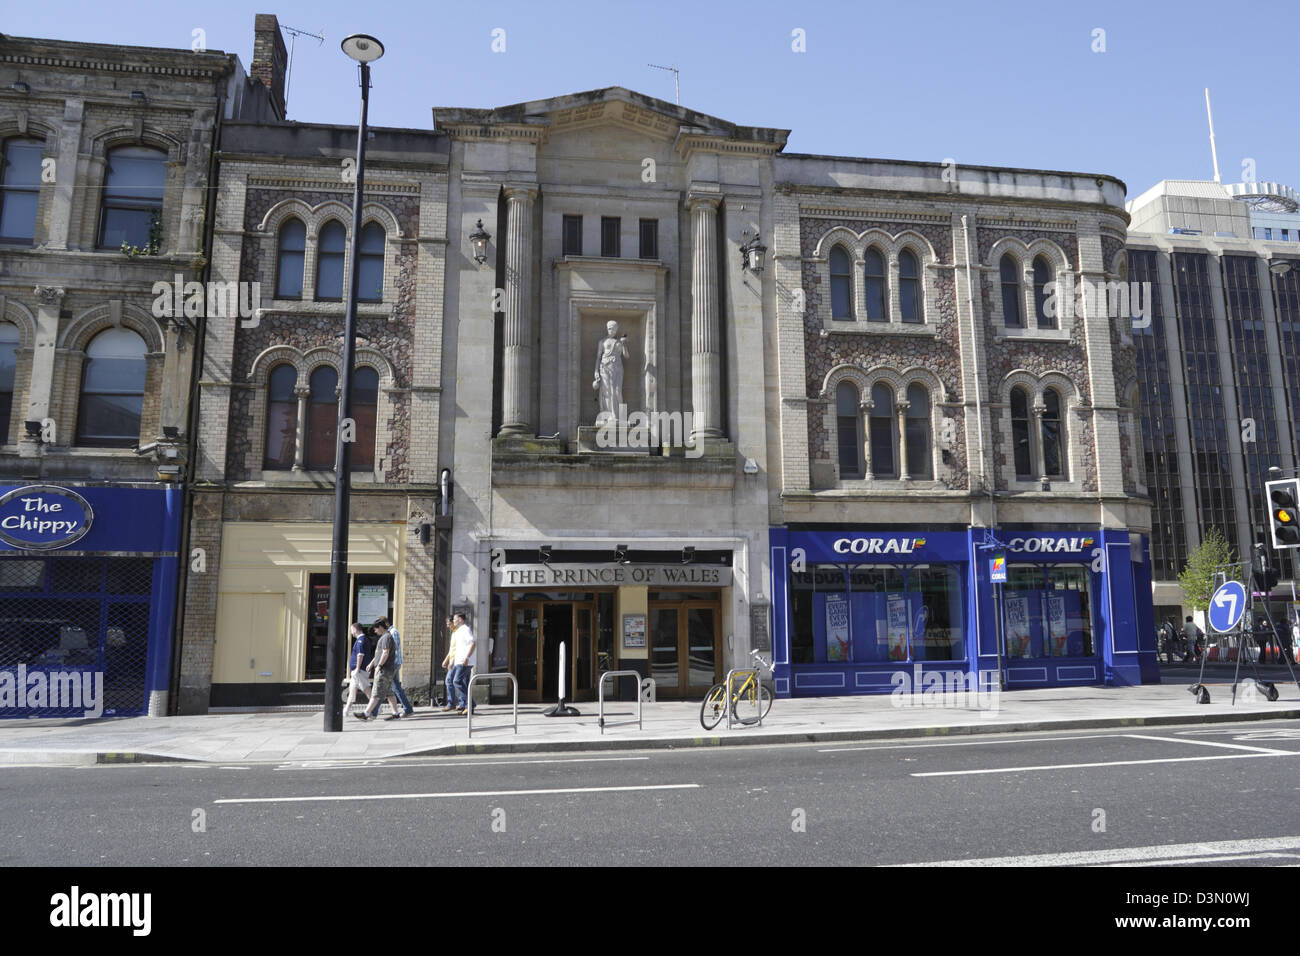 Victorian Gothic Architecture In Cardiff And Modern Shop Fronts With Prince Of Wales Wetherspoons The Middle